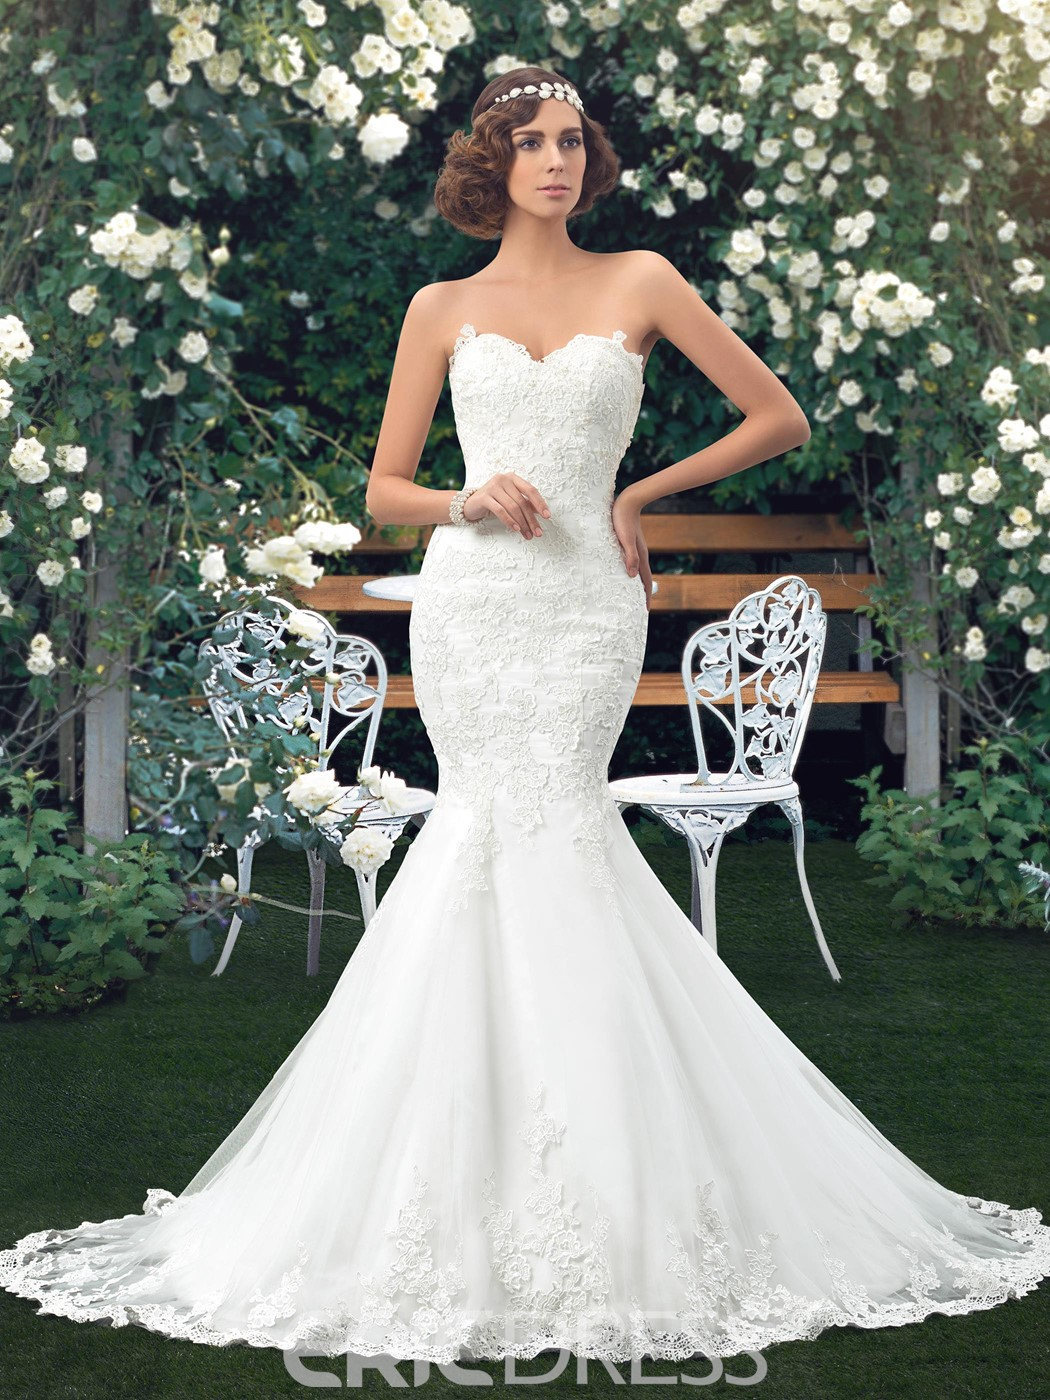 Wedding Dress Sweetheart Applique Mermaid 11176047 - Ericdress.com